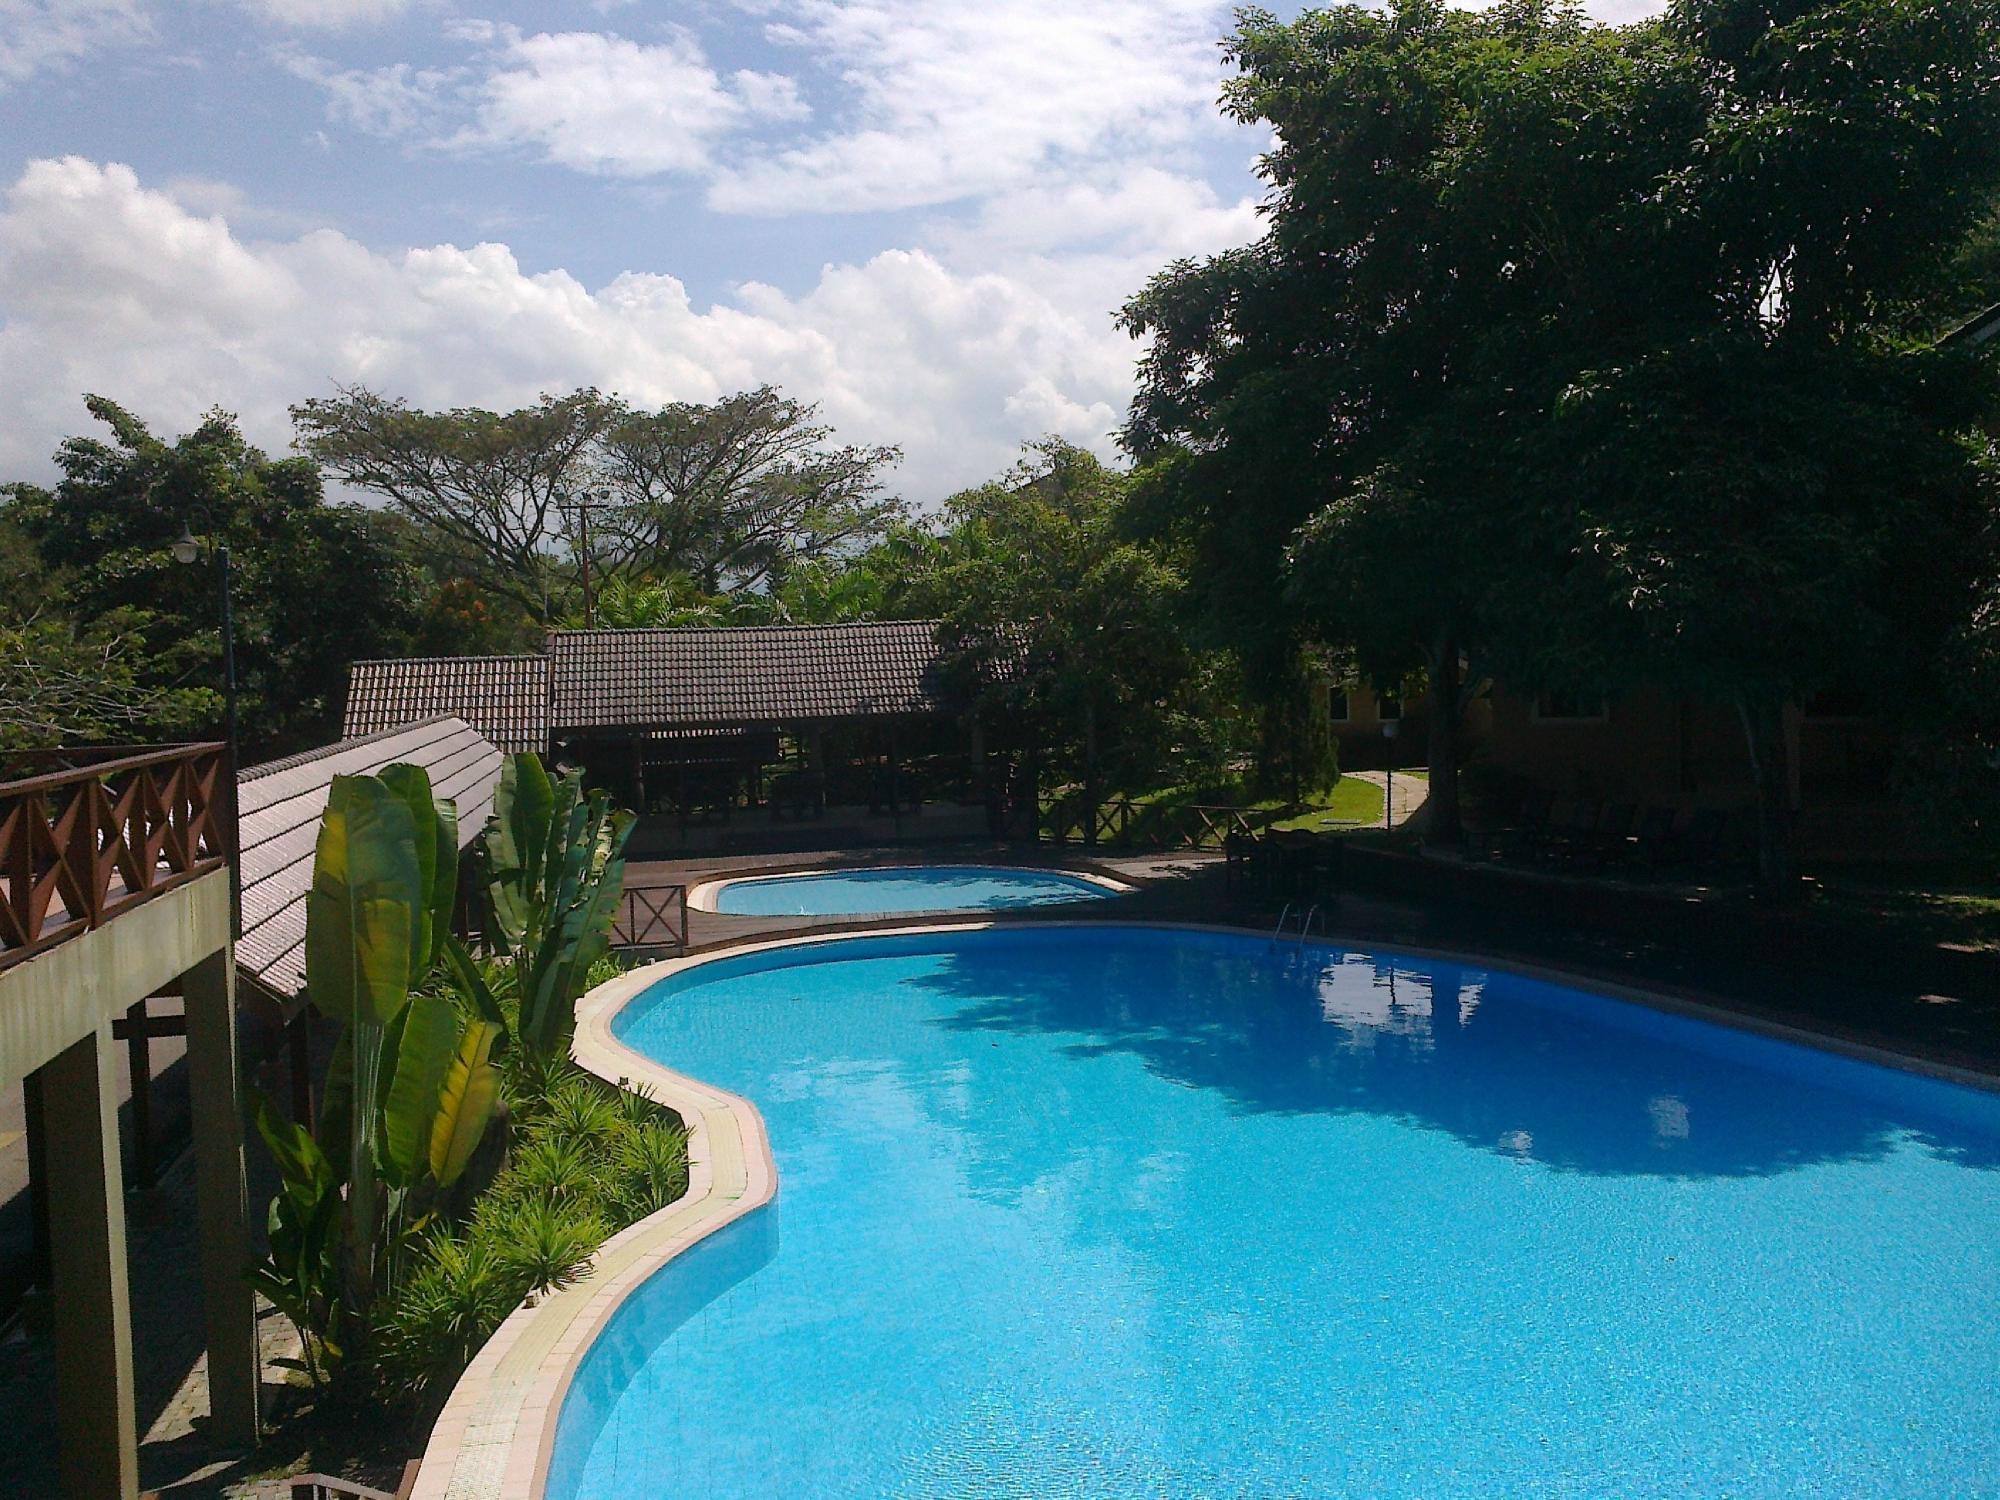 Lembah Impian Country Homes Resort